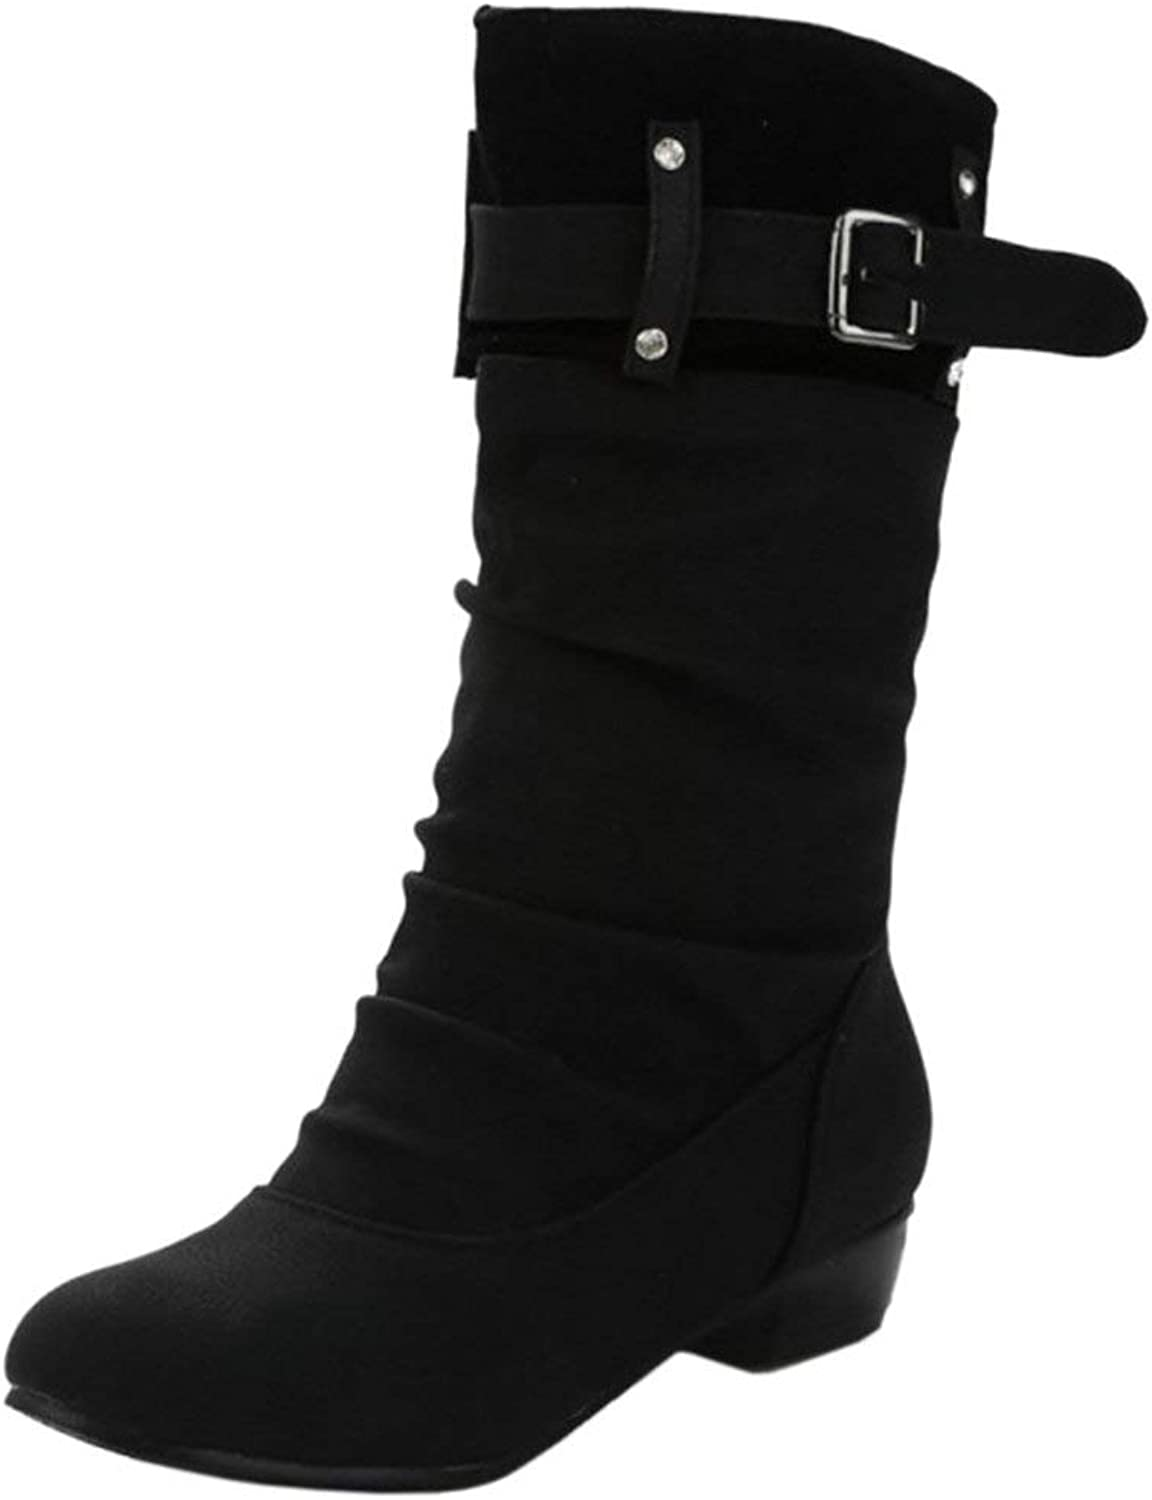 Unm Women Fashion Pull On Mid-Calf Boots shoes Winter Warm